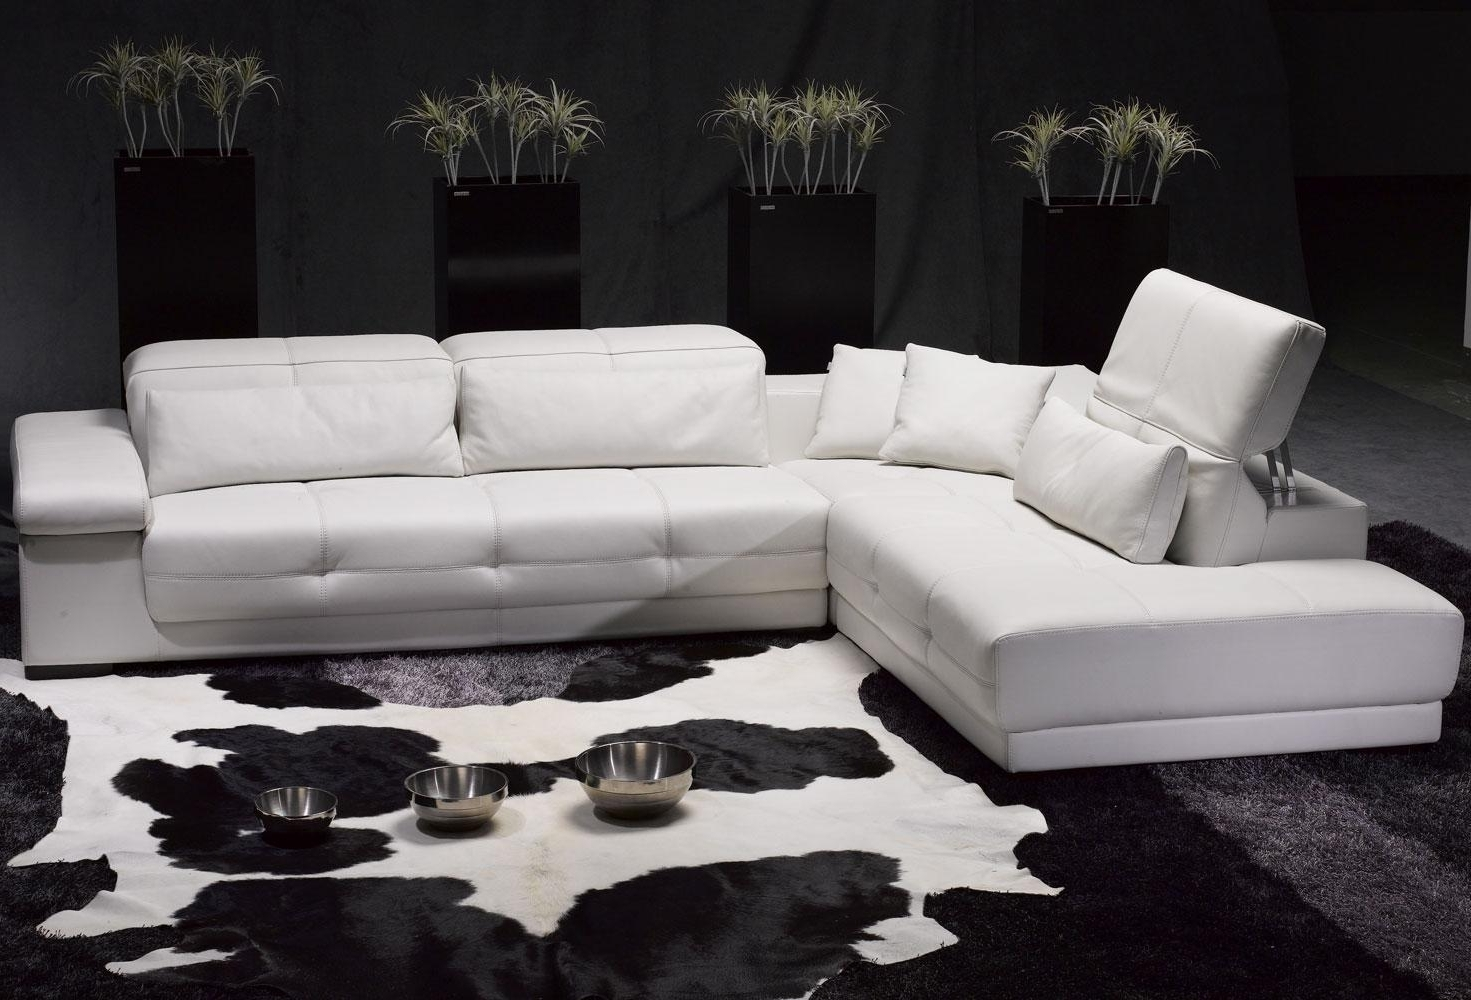 Most Popular Alluring White Leather Sectional Sofa Ideas For Living Room Throughout High End Leather Sectional Sofas (View 10 of 15)